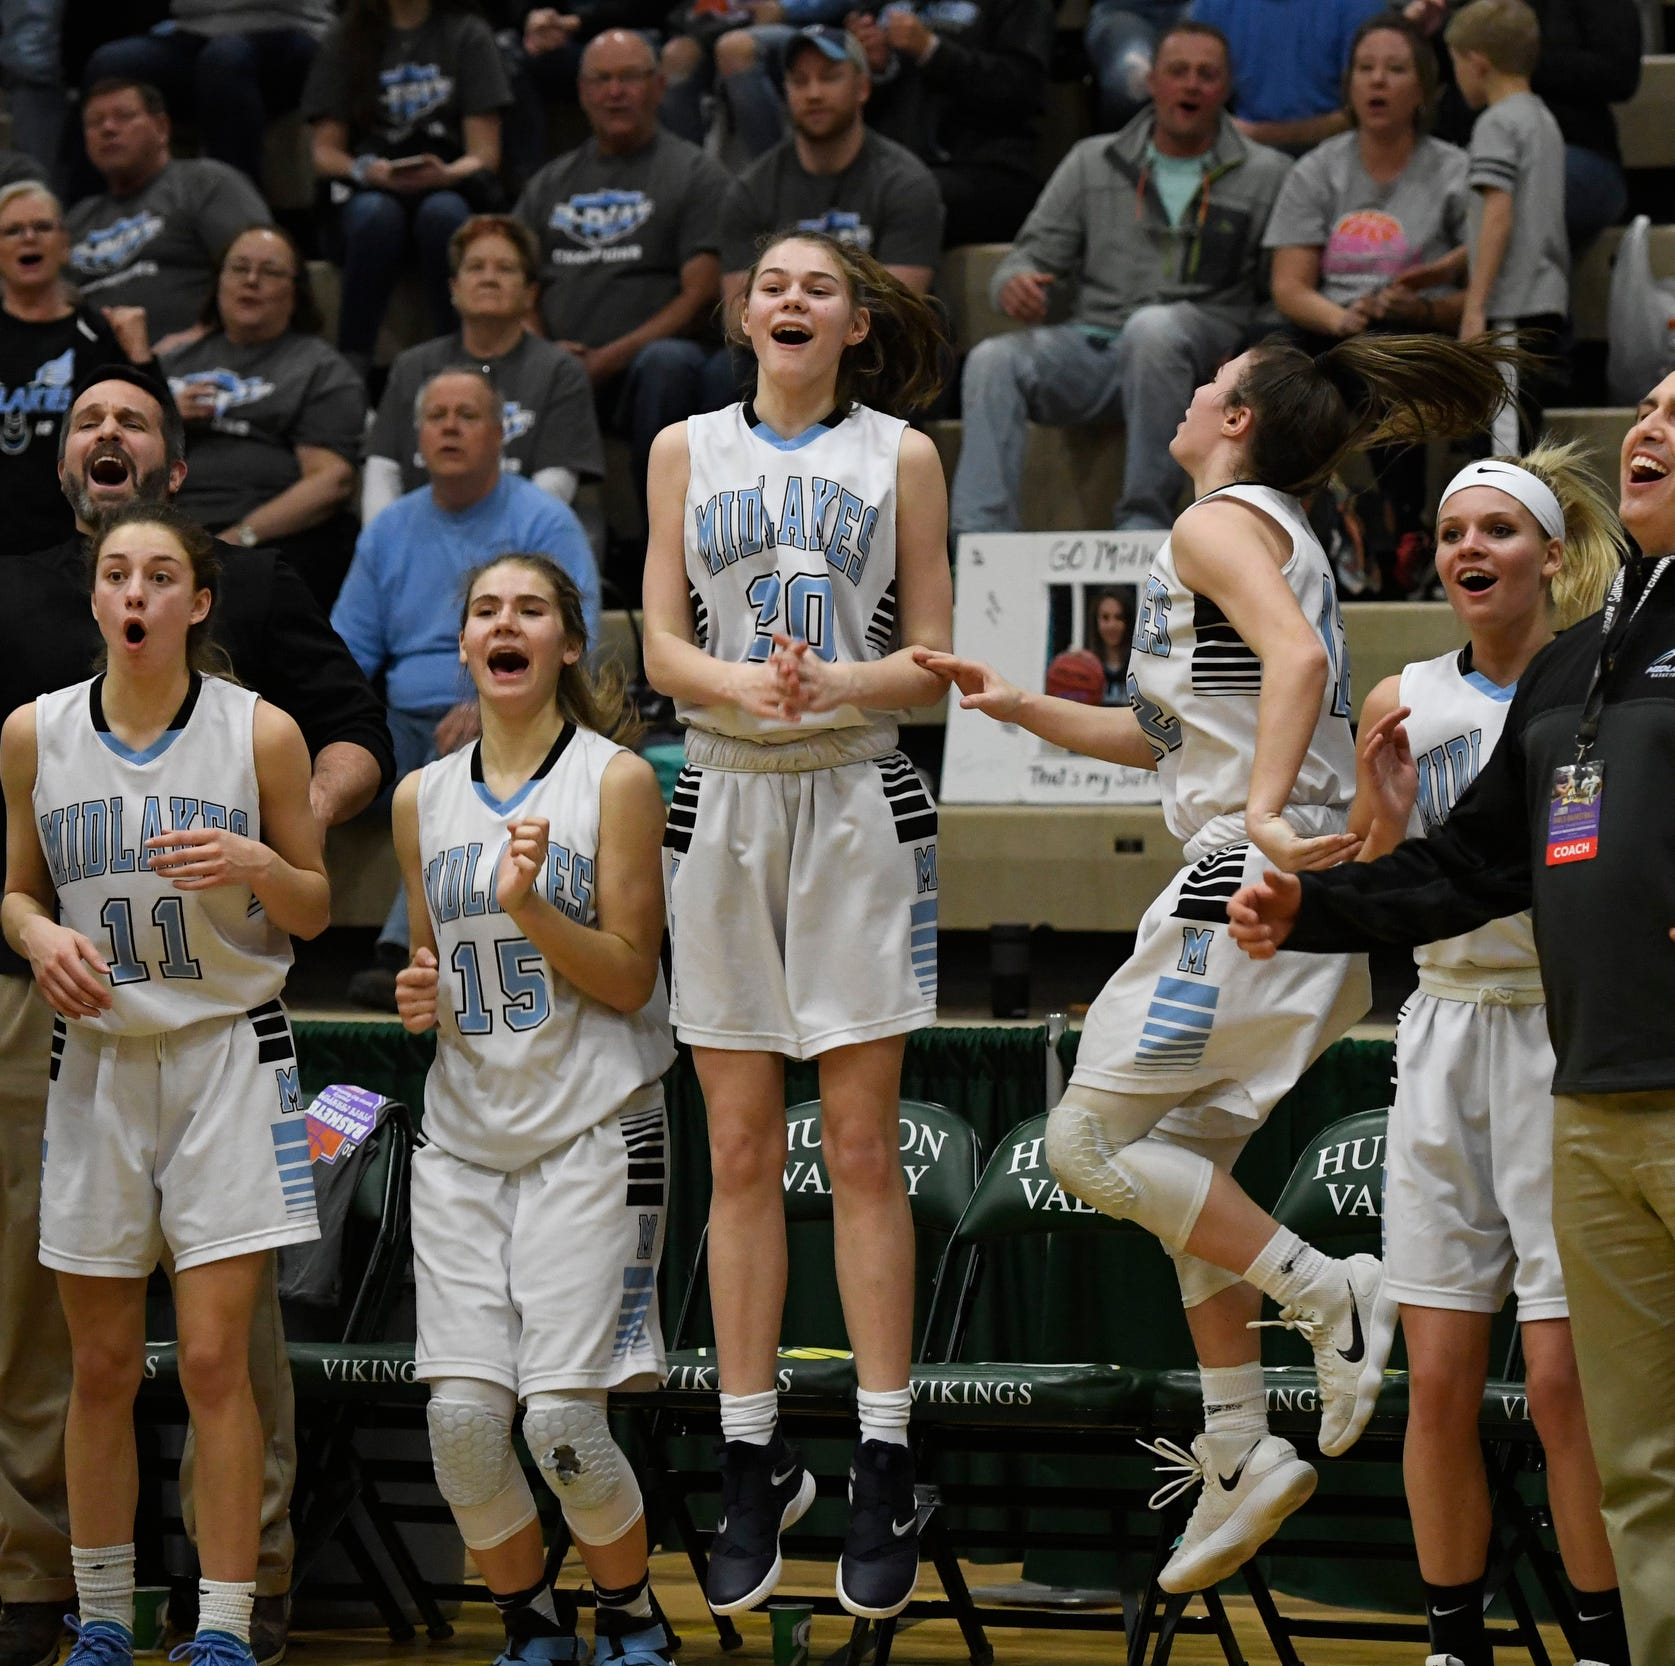 Midlakes flies into Class B girls basketball state final with 20-point win over Canton